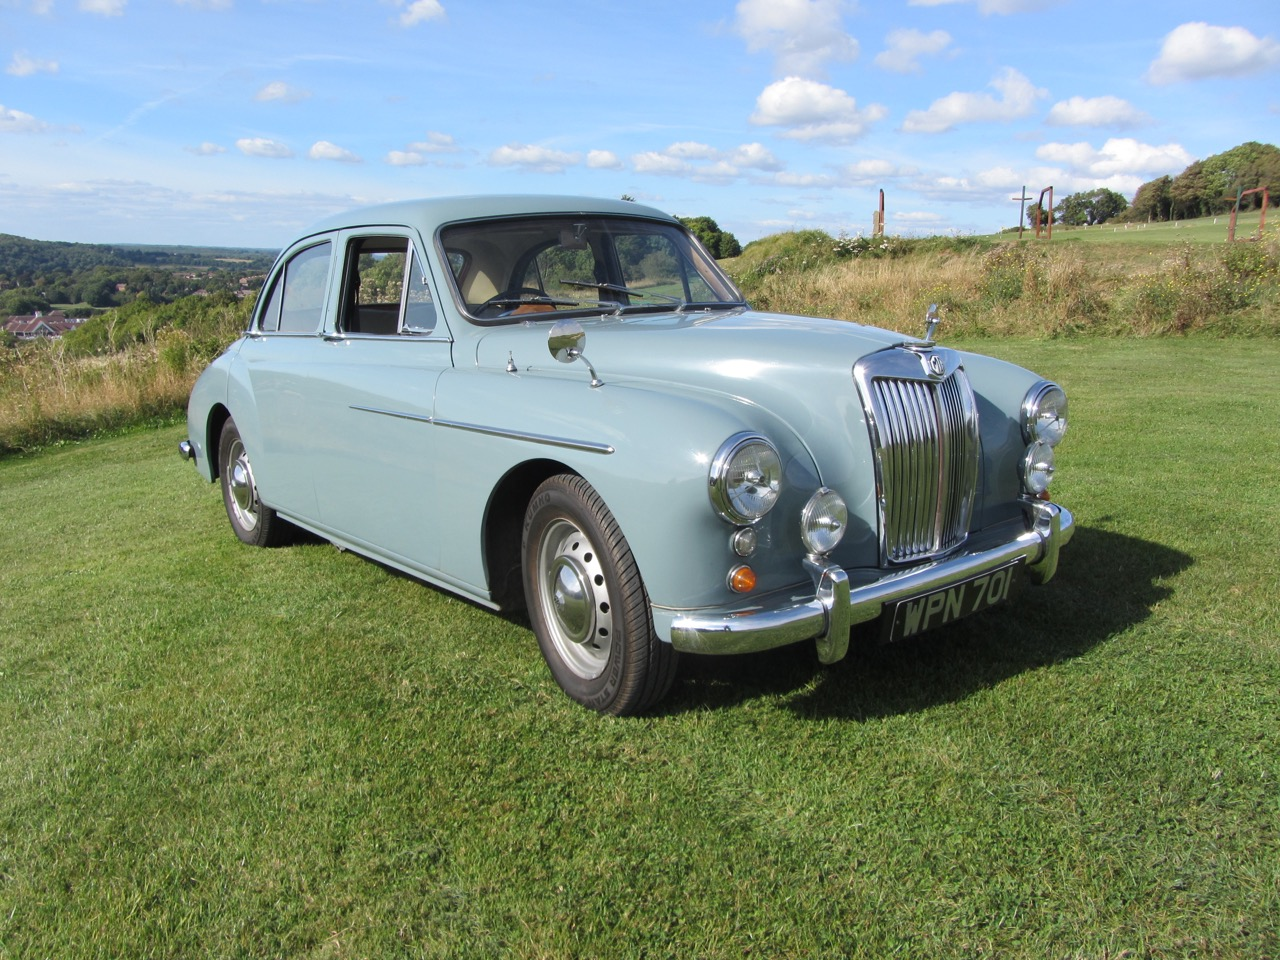 1957 MG ZB Magnette for sale